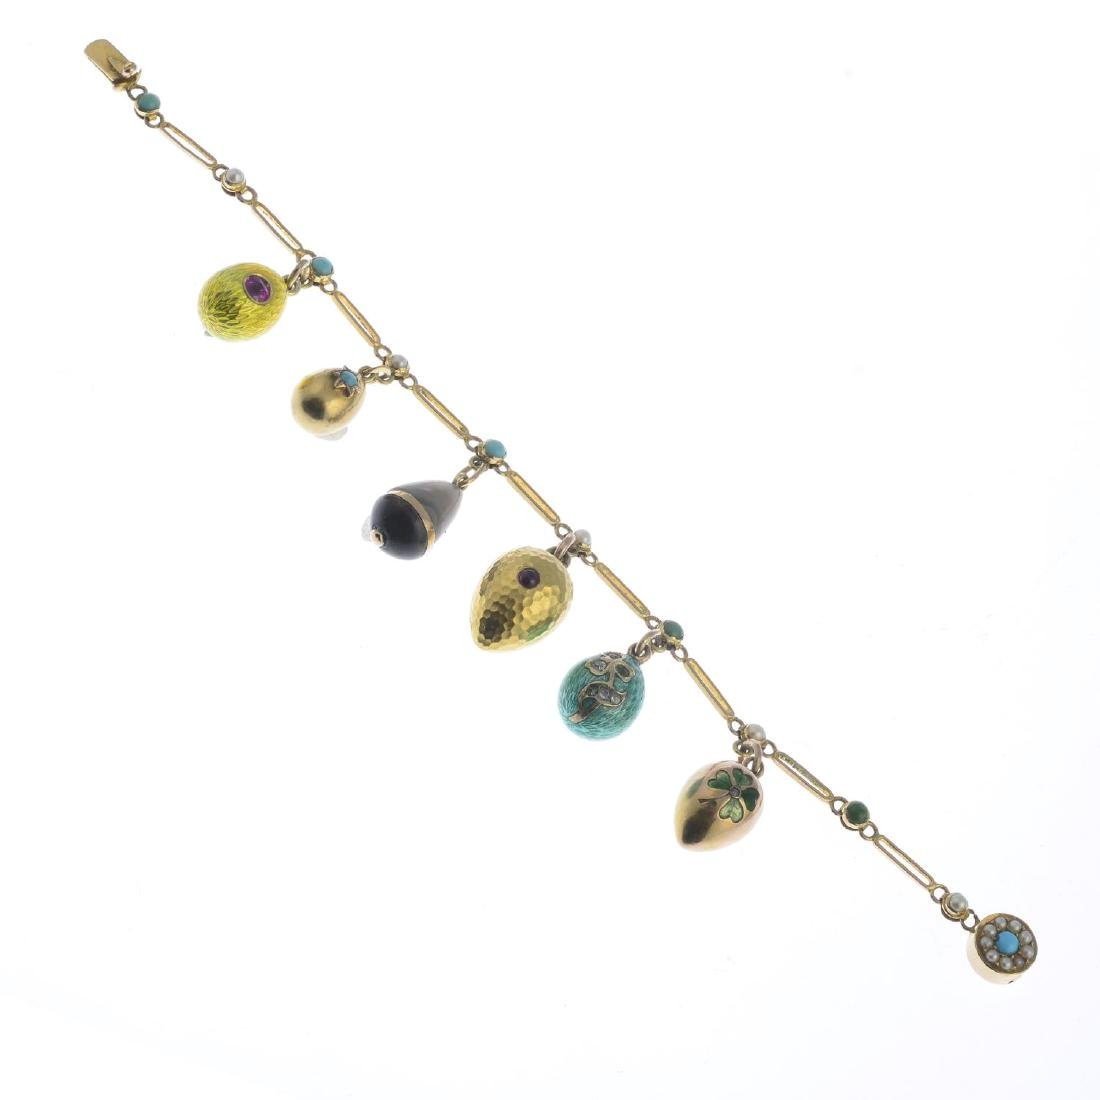 An early 20th century gold charm bracelet. The - 2